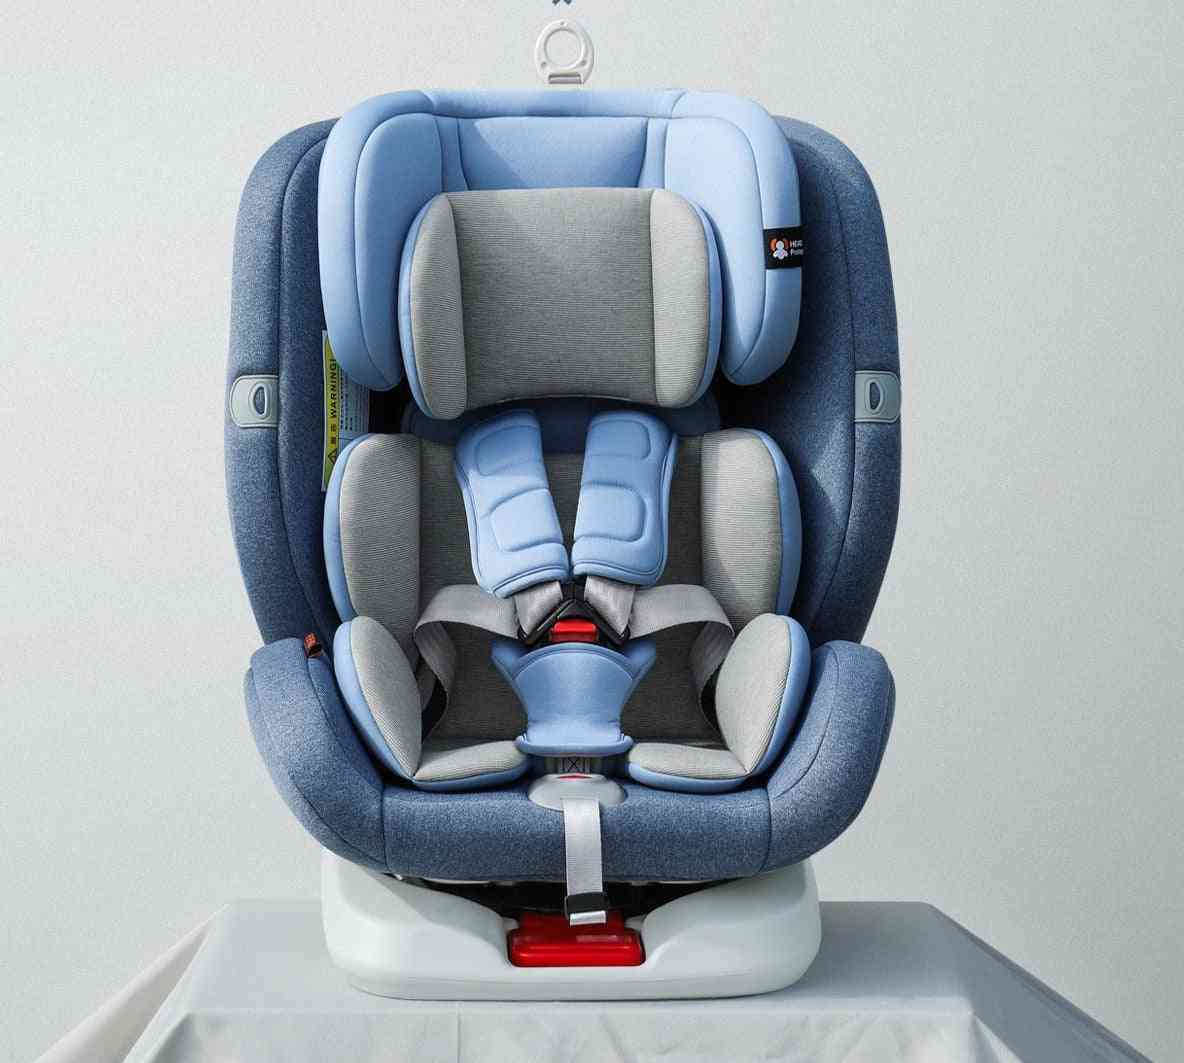 Child Safety Car Seat For 0-12 Years Old